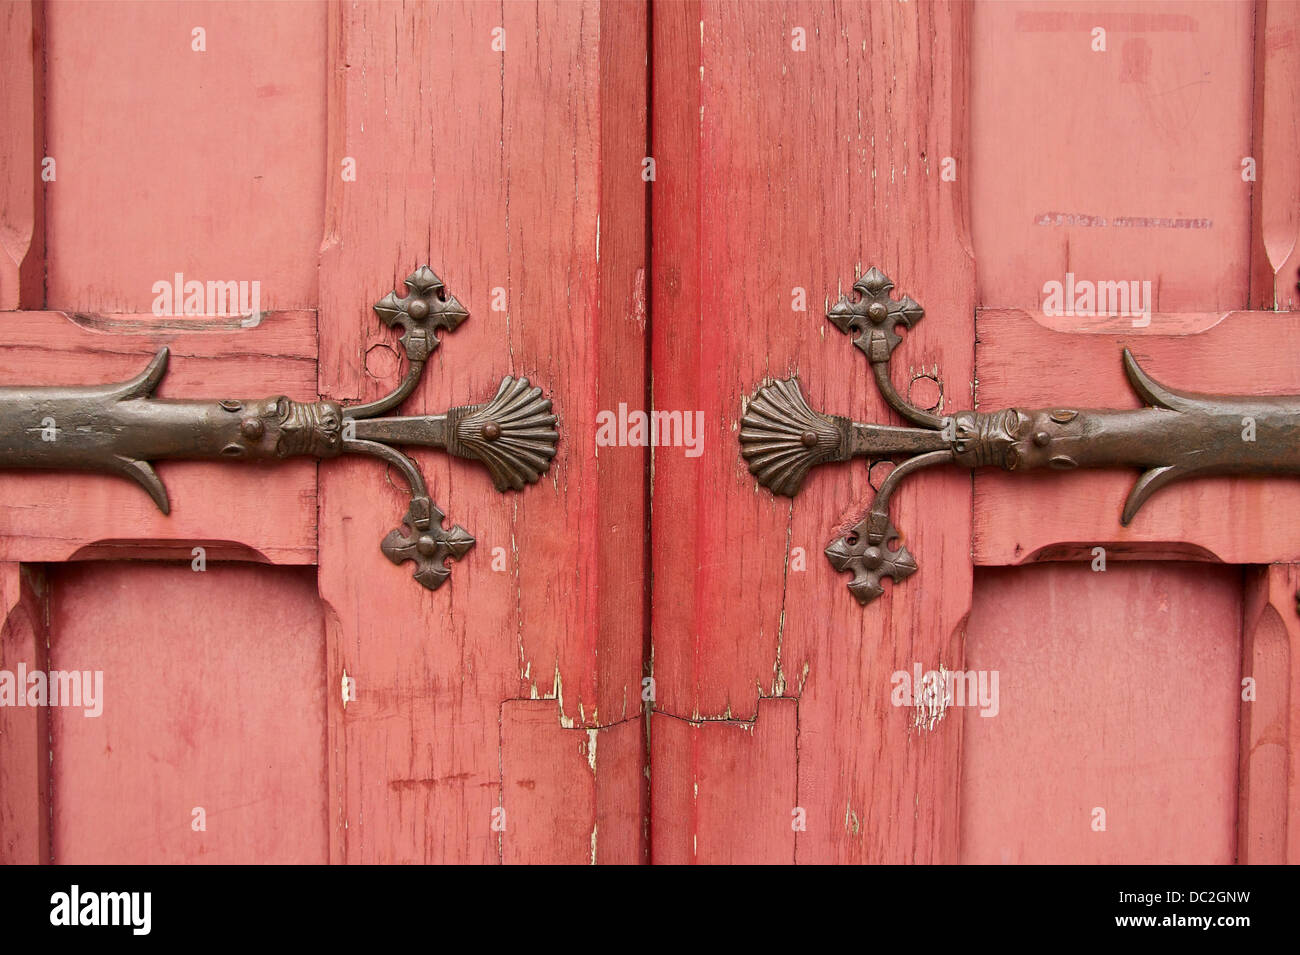 Closed doors of Hôtel de Cluny in Paris. Detail of the wrought iron hinges by Pierre Boulanger, (1813-1891), - Stock Image